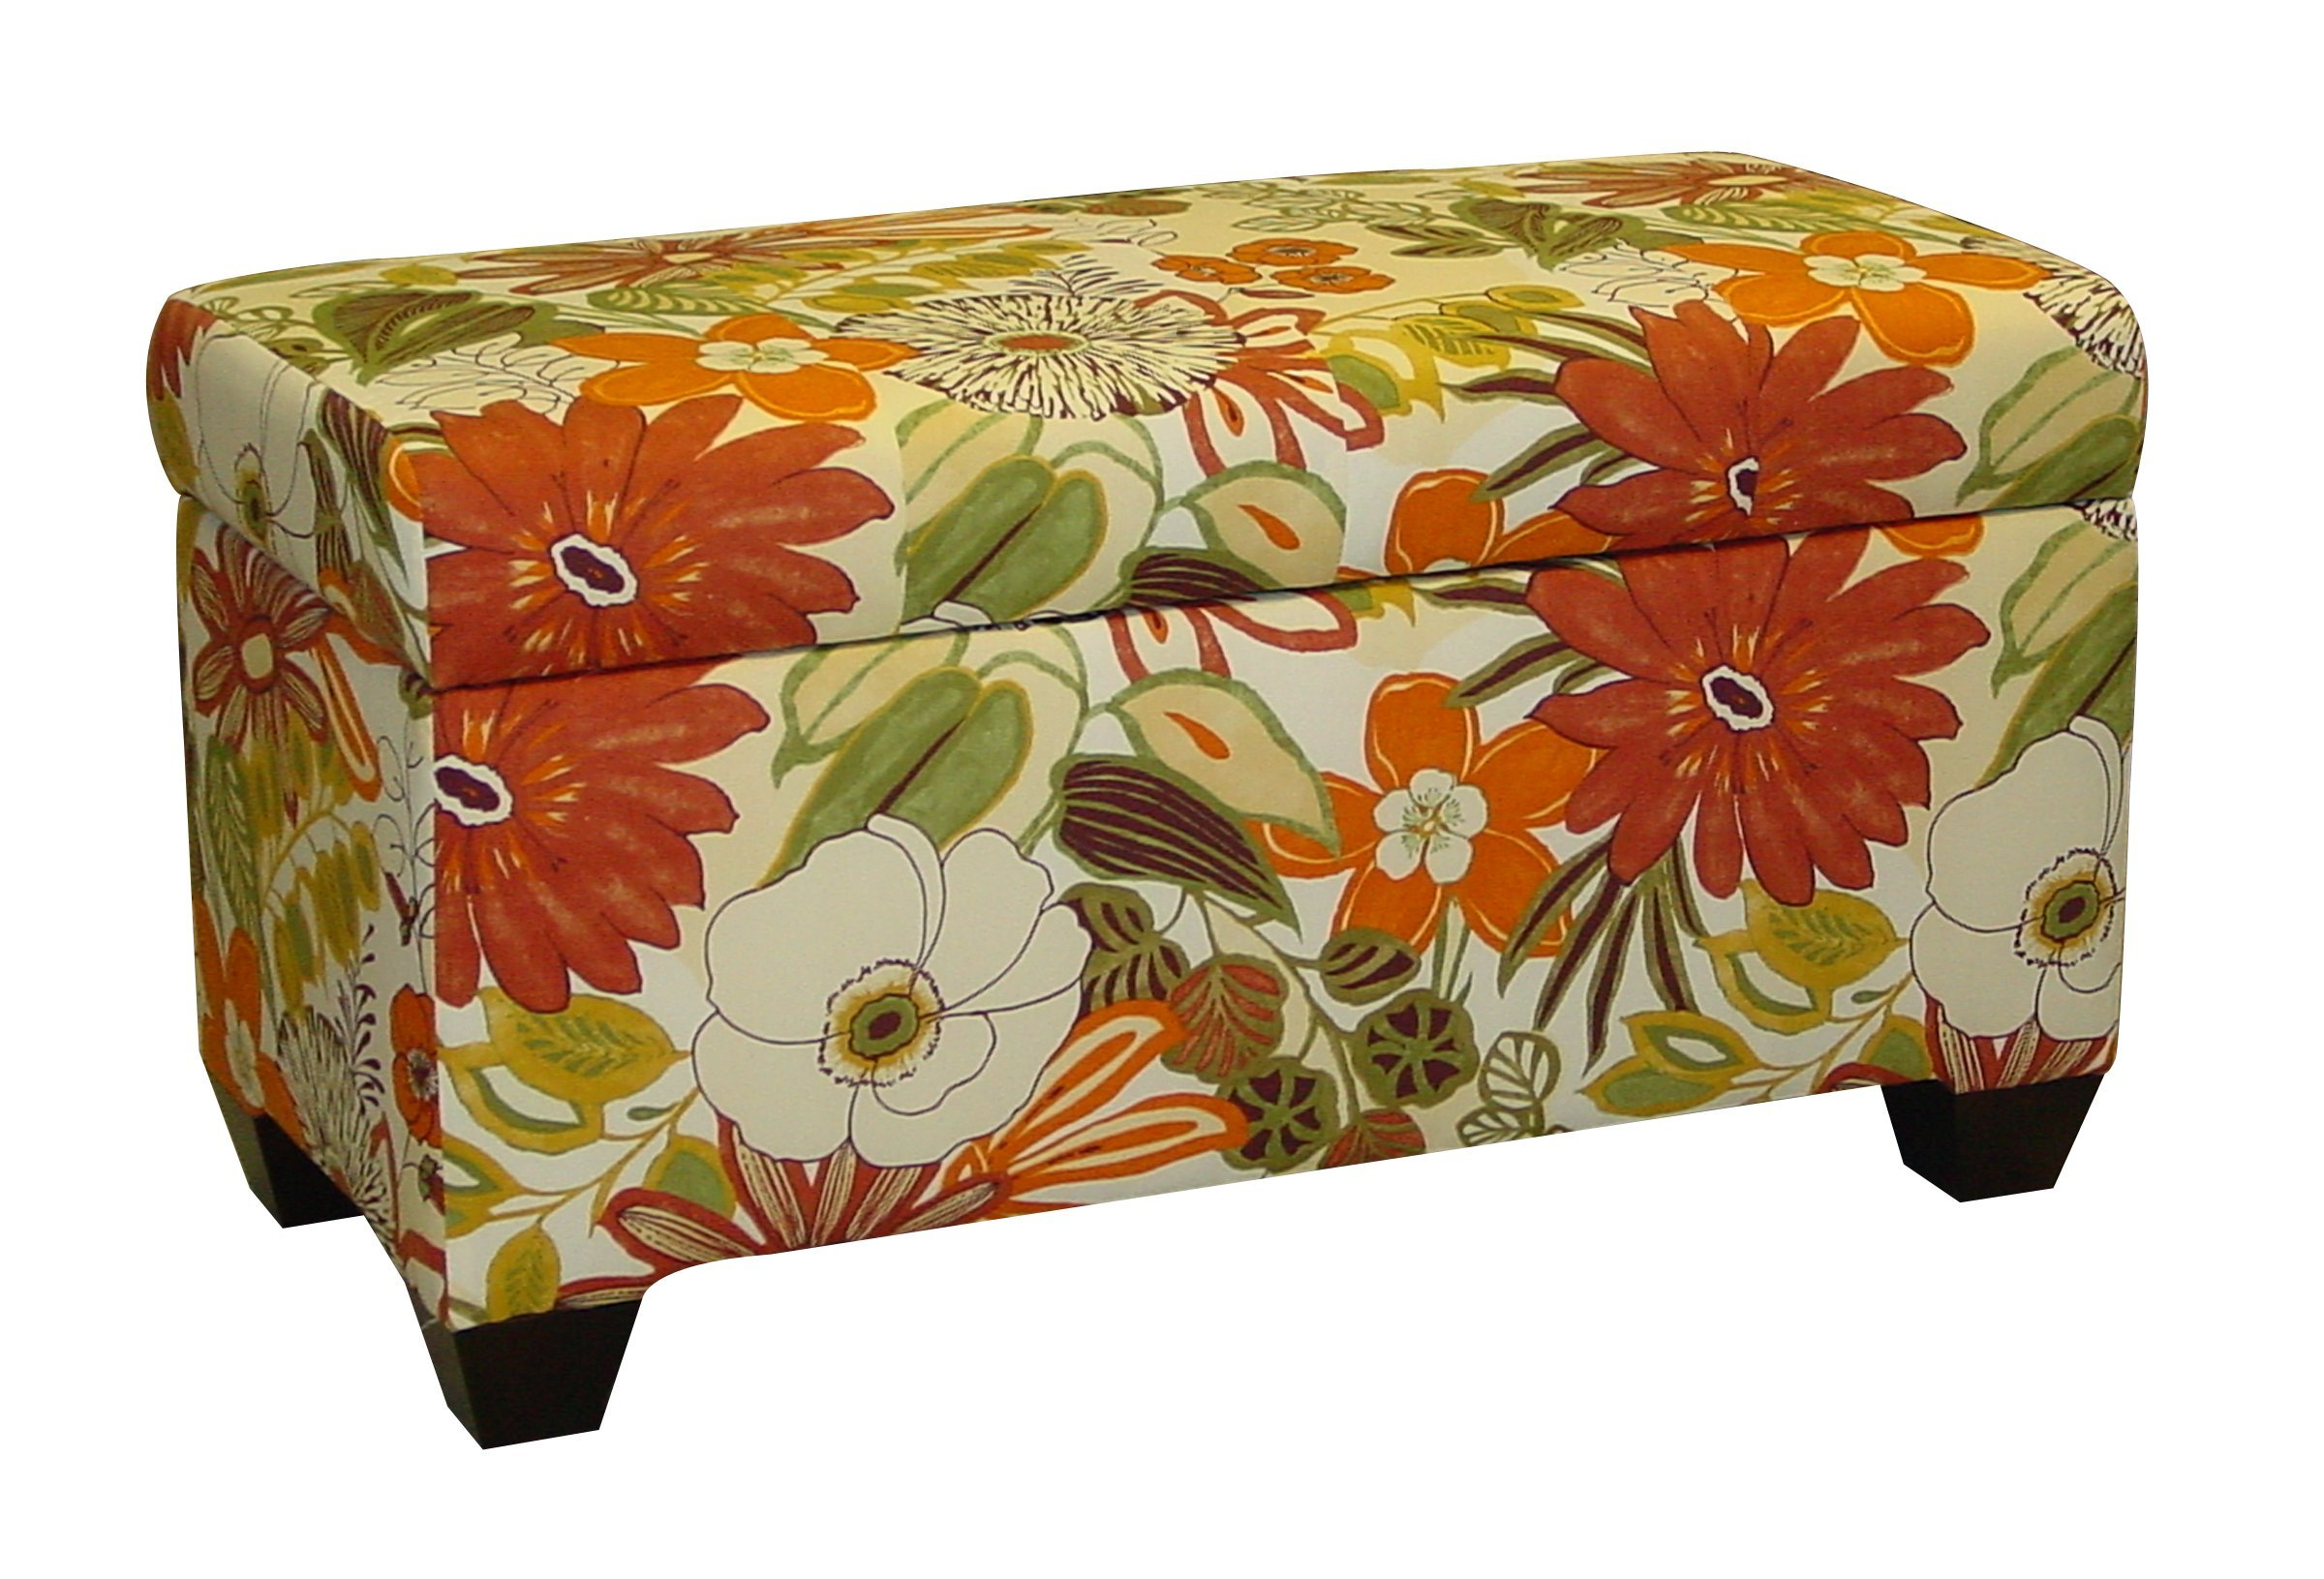 Skyline Furniture Walnut Hill Storage Bench in Lilith Marigold Fabric - Hand crafted in the USA Solid wood frame 100-Percent Cotton Upholstery - entryway-furniture-decor, entryway-laundry-room, benches - 81e654YUVwL -